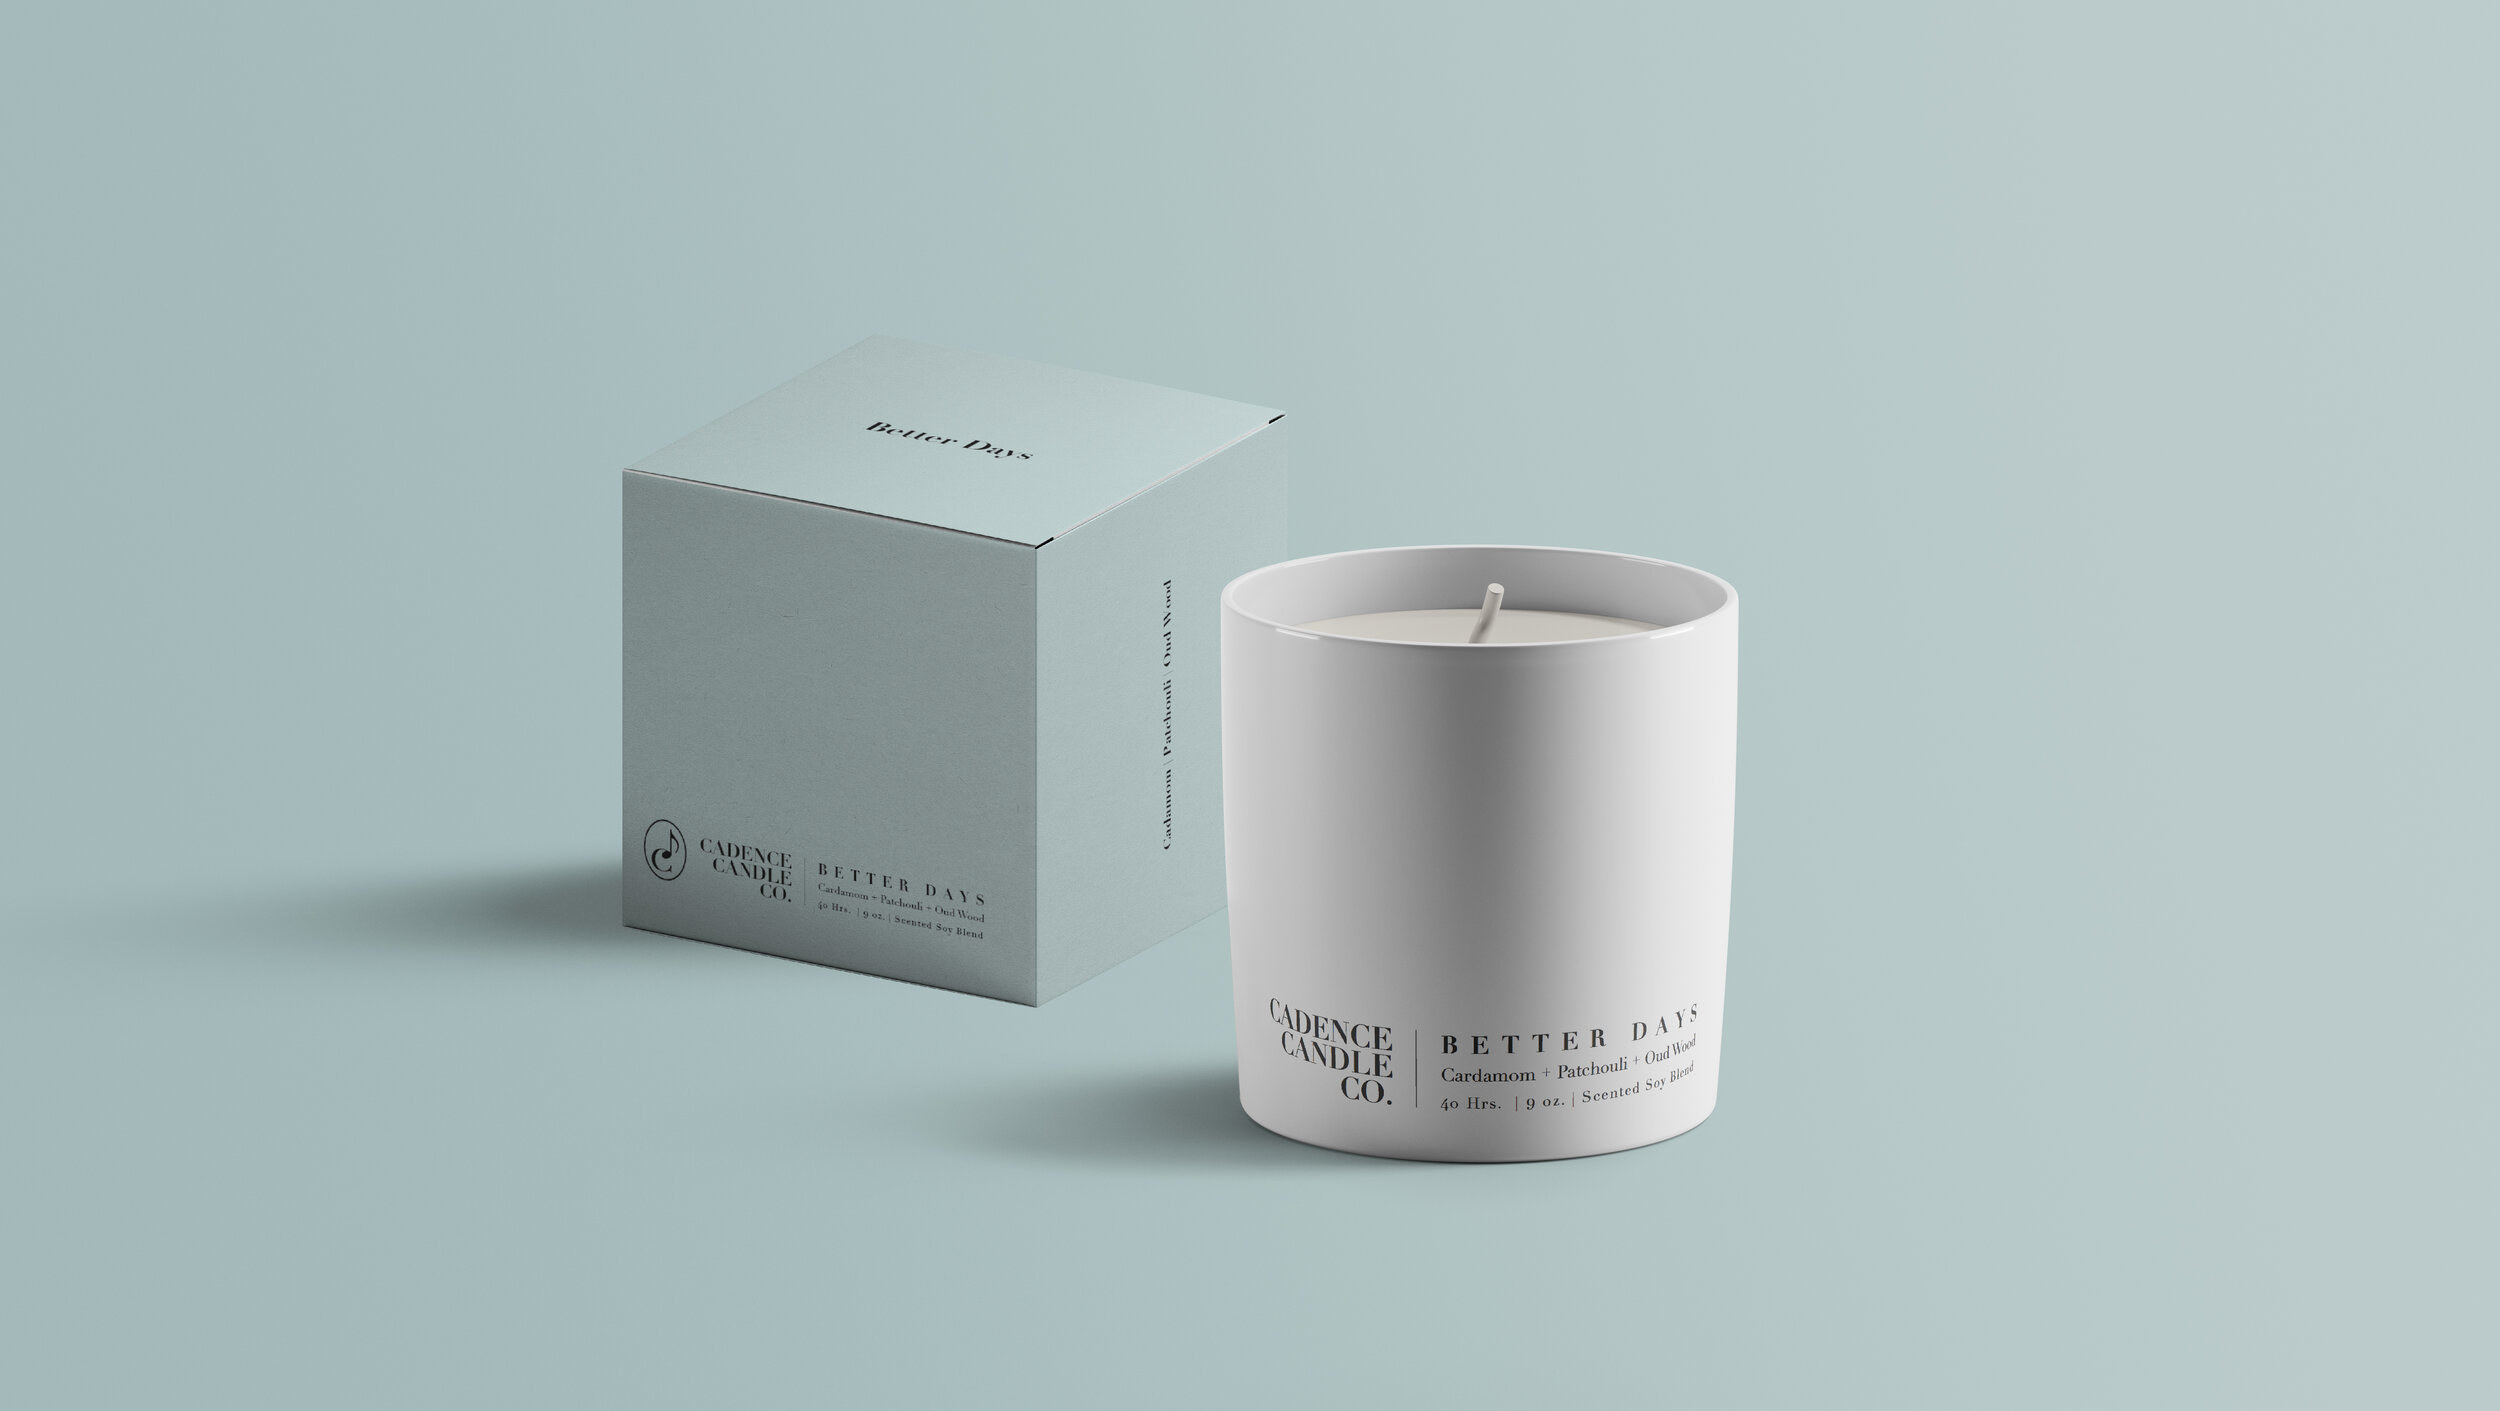 a white candle that says better days on it next to a pale blue box